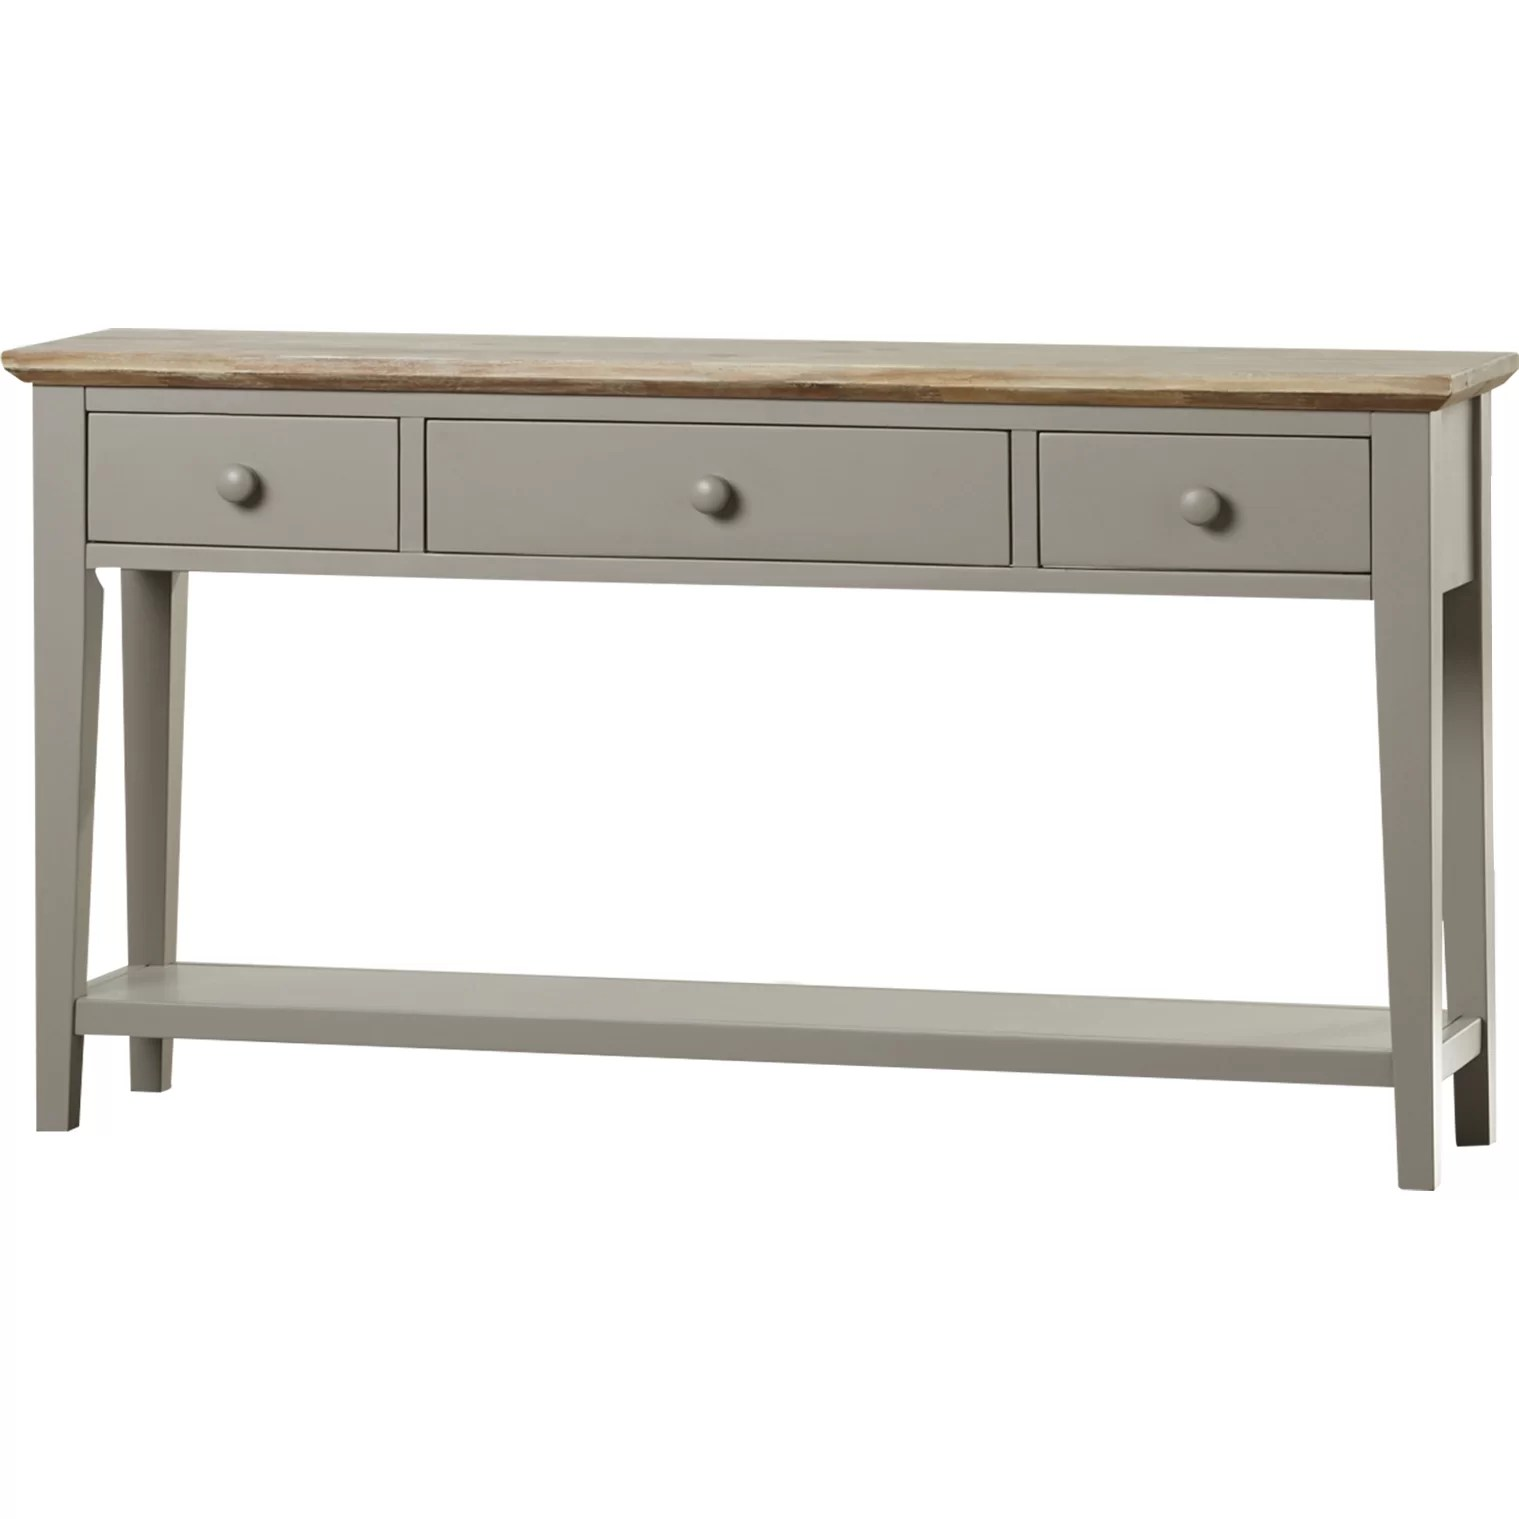 Table Consoles Lily Manor Alban Console Table And Reviews Wayfair Uk